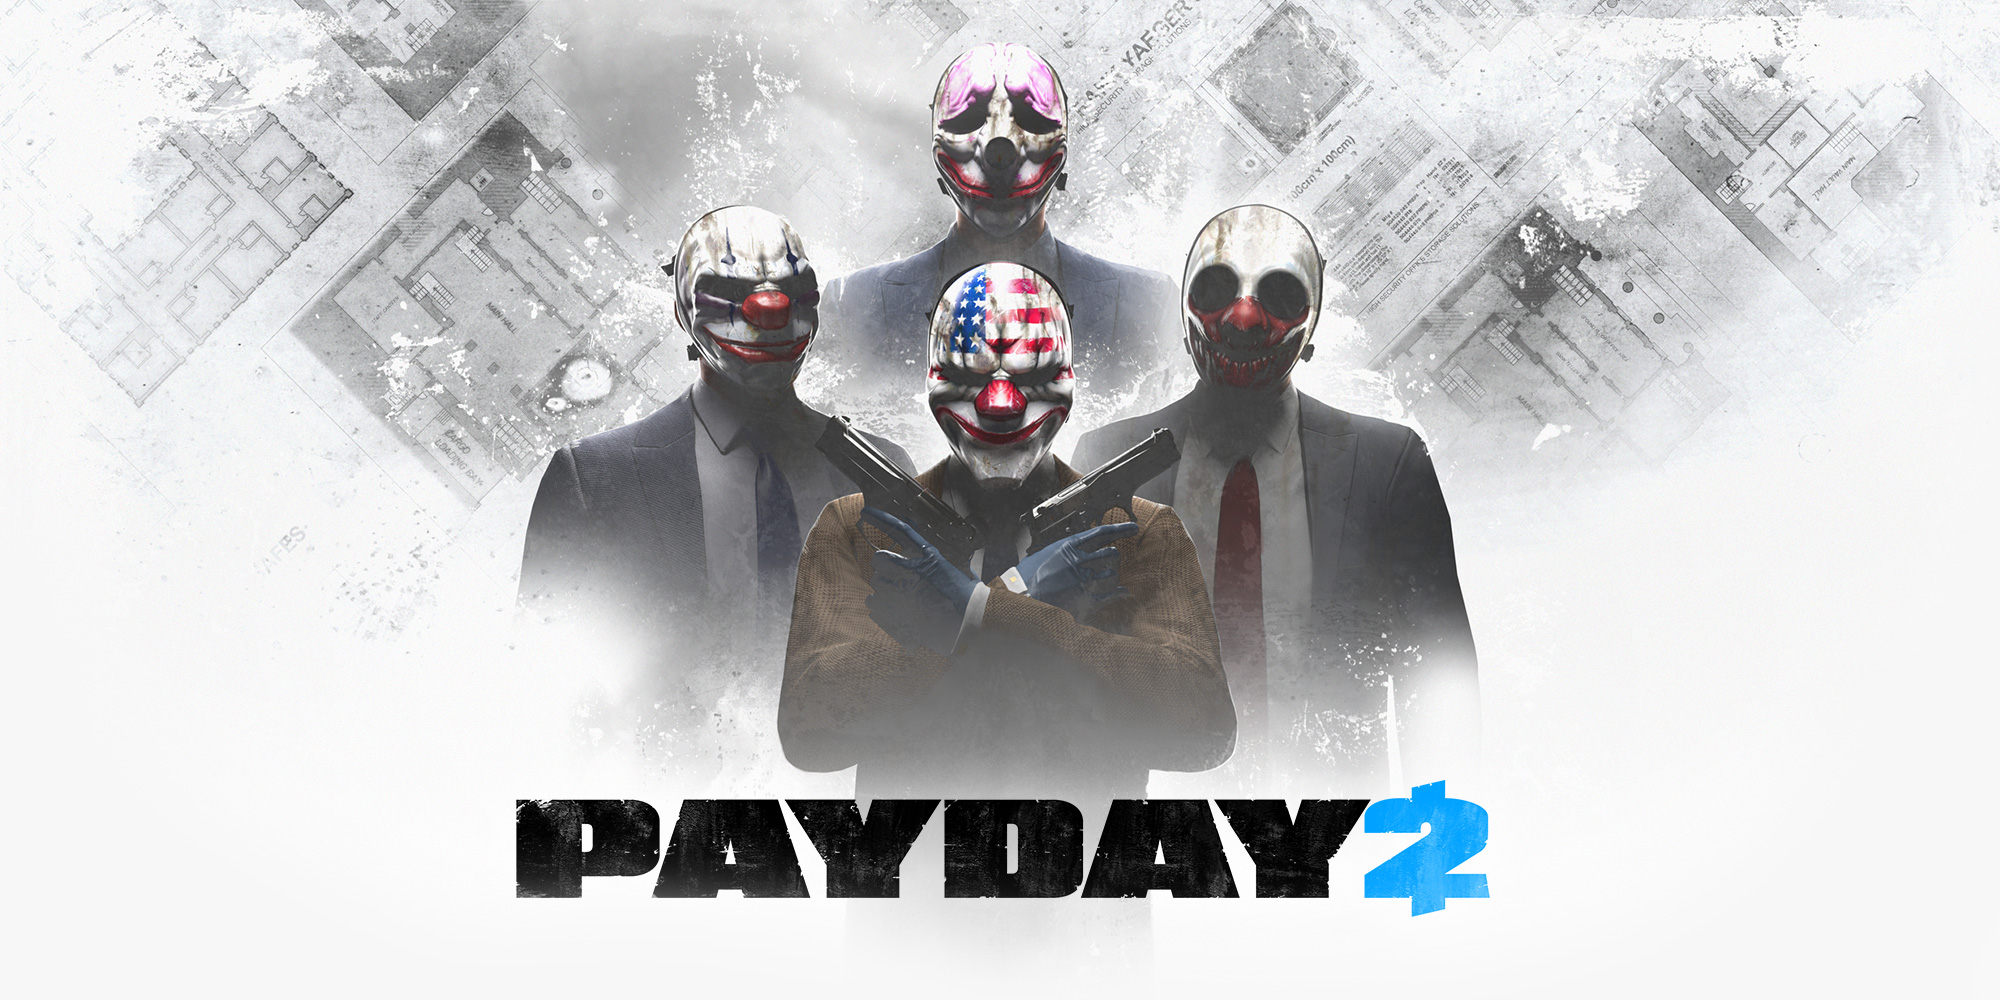 [TEST] PAYDAY 2 sur Nintendo Switch